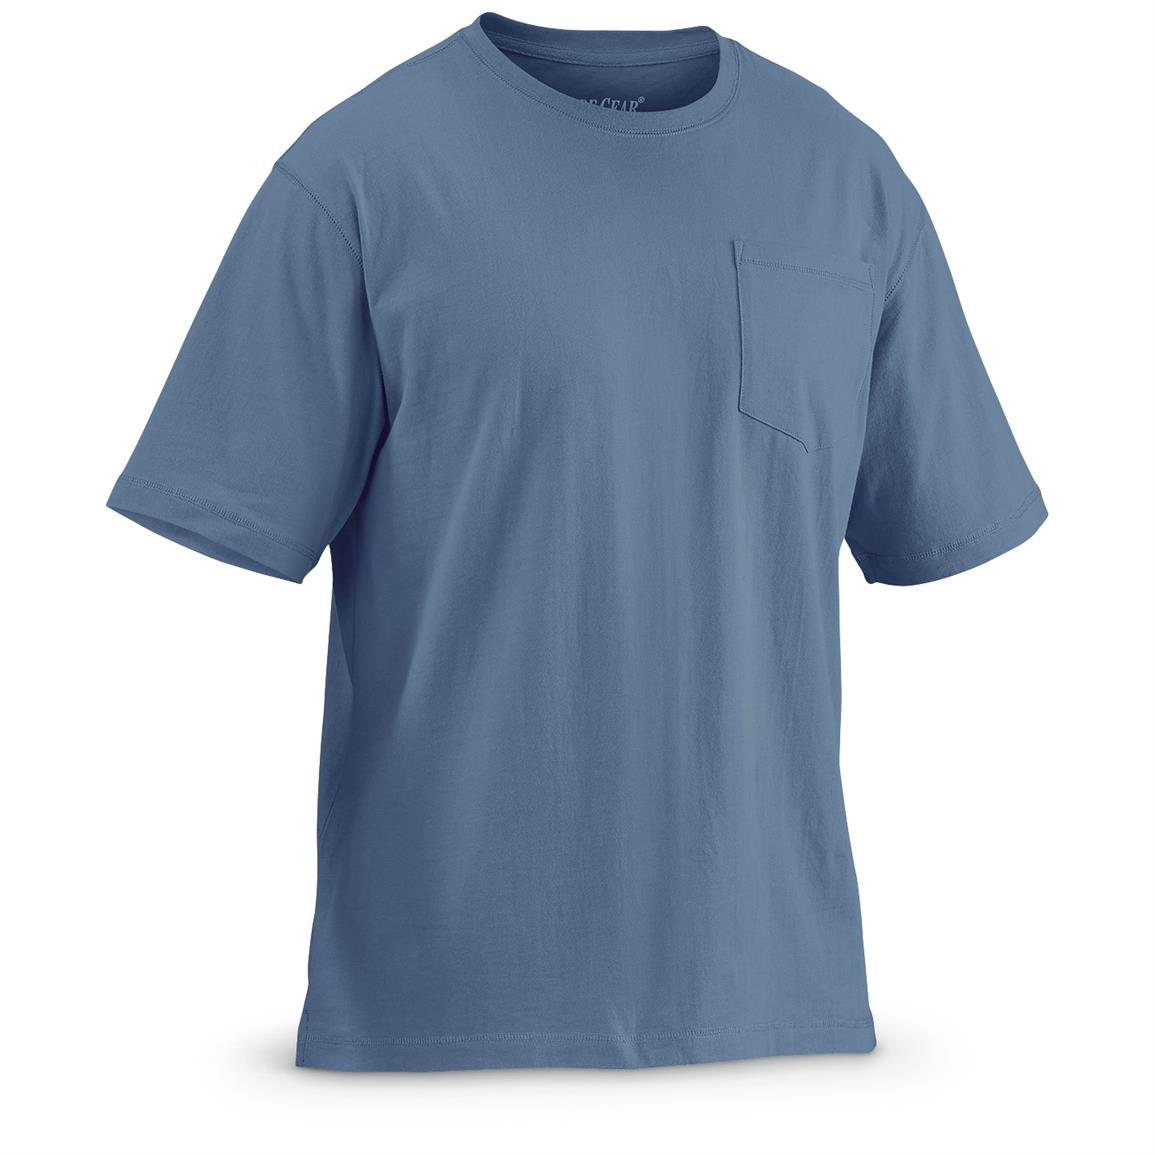 Guide Gear Men's Heavy-Weight Pocket Short-Sleeve T-Shirt, Blue